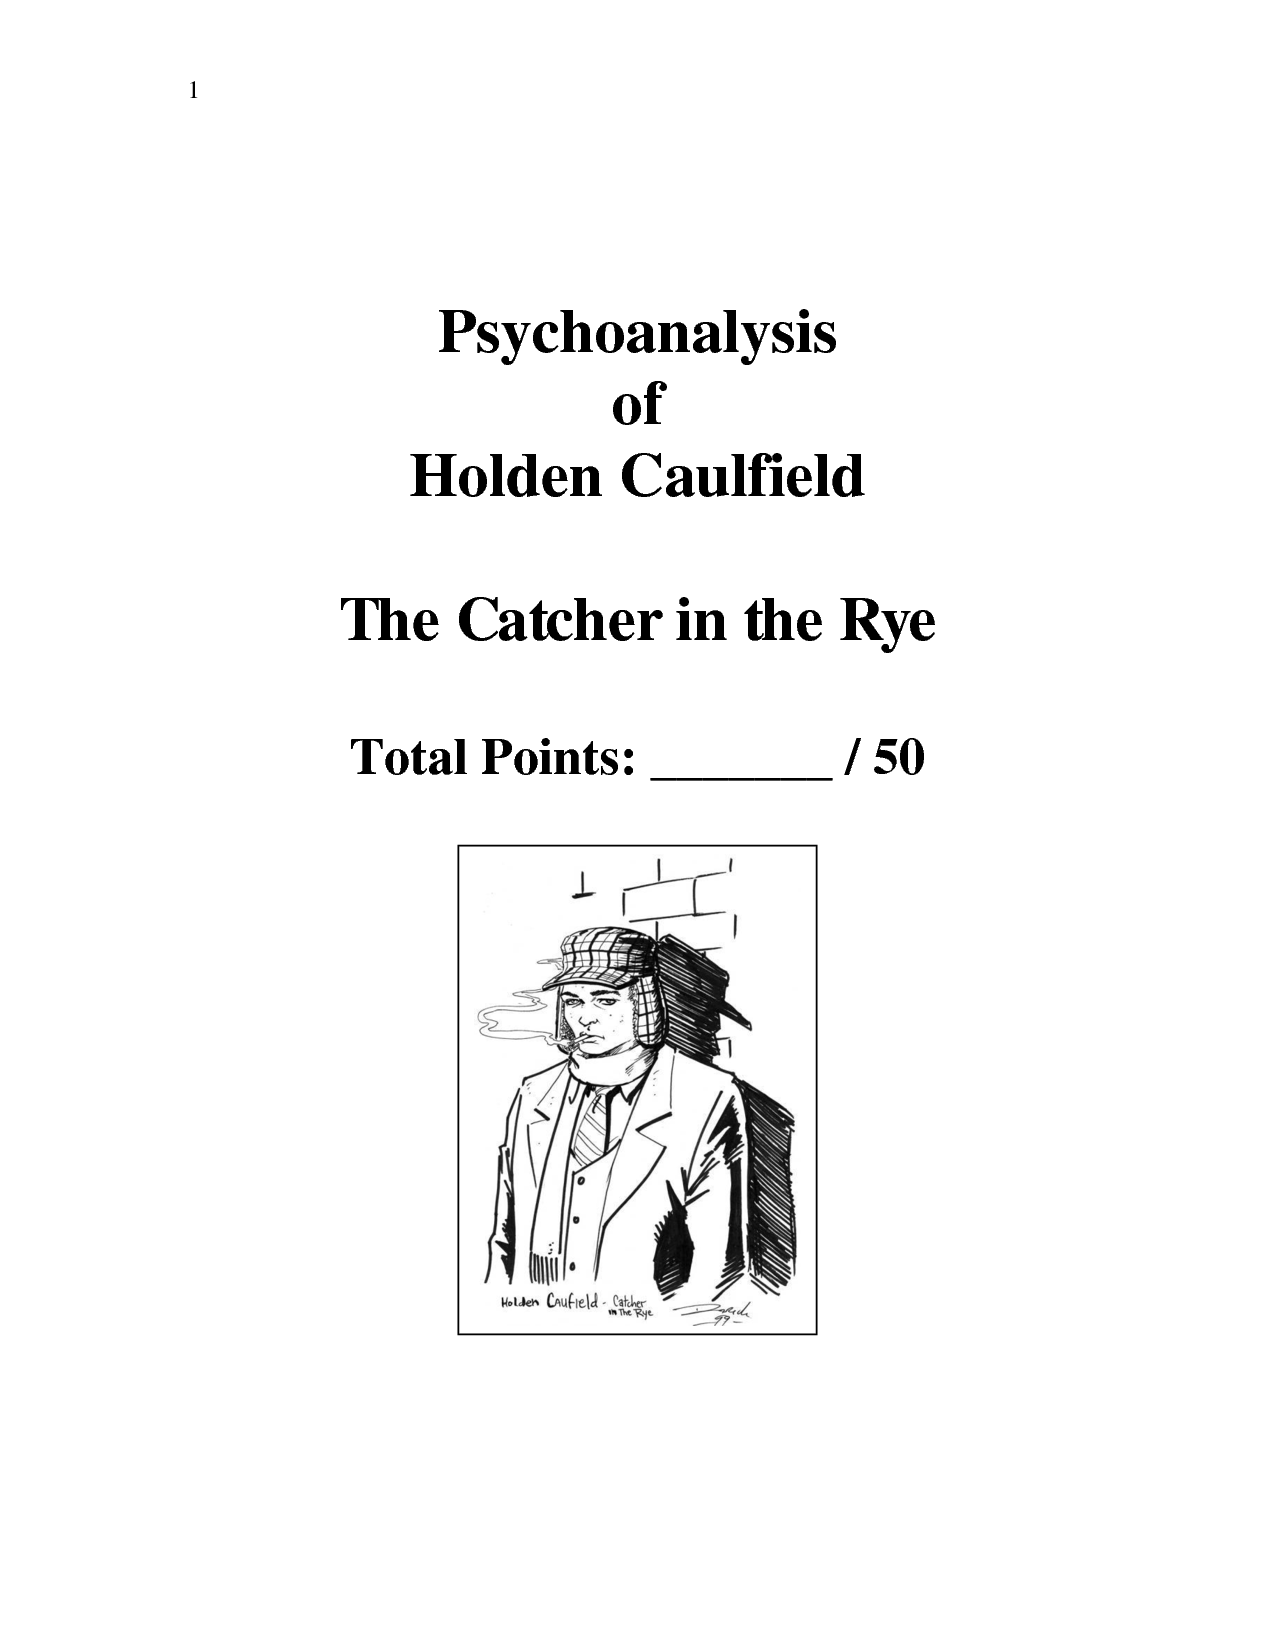 holden caulfields disconnection from sexuality and the sexual issues in the catcher in the rye a nov Represents holden and sexuality 1) holden's quote that he wants to be a catcher in the rye this represents holden's sexual assault (holden has.